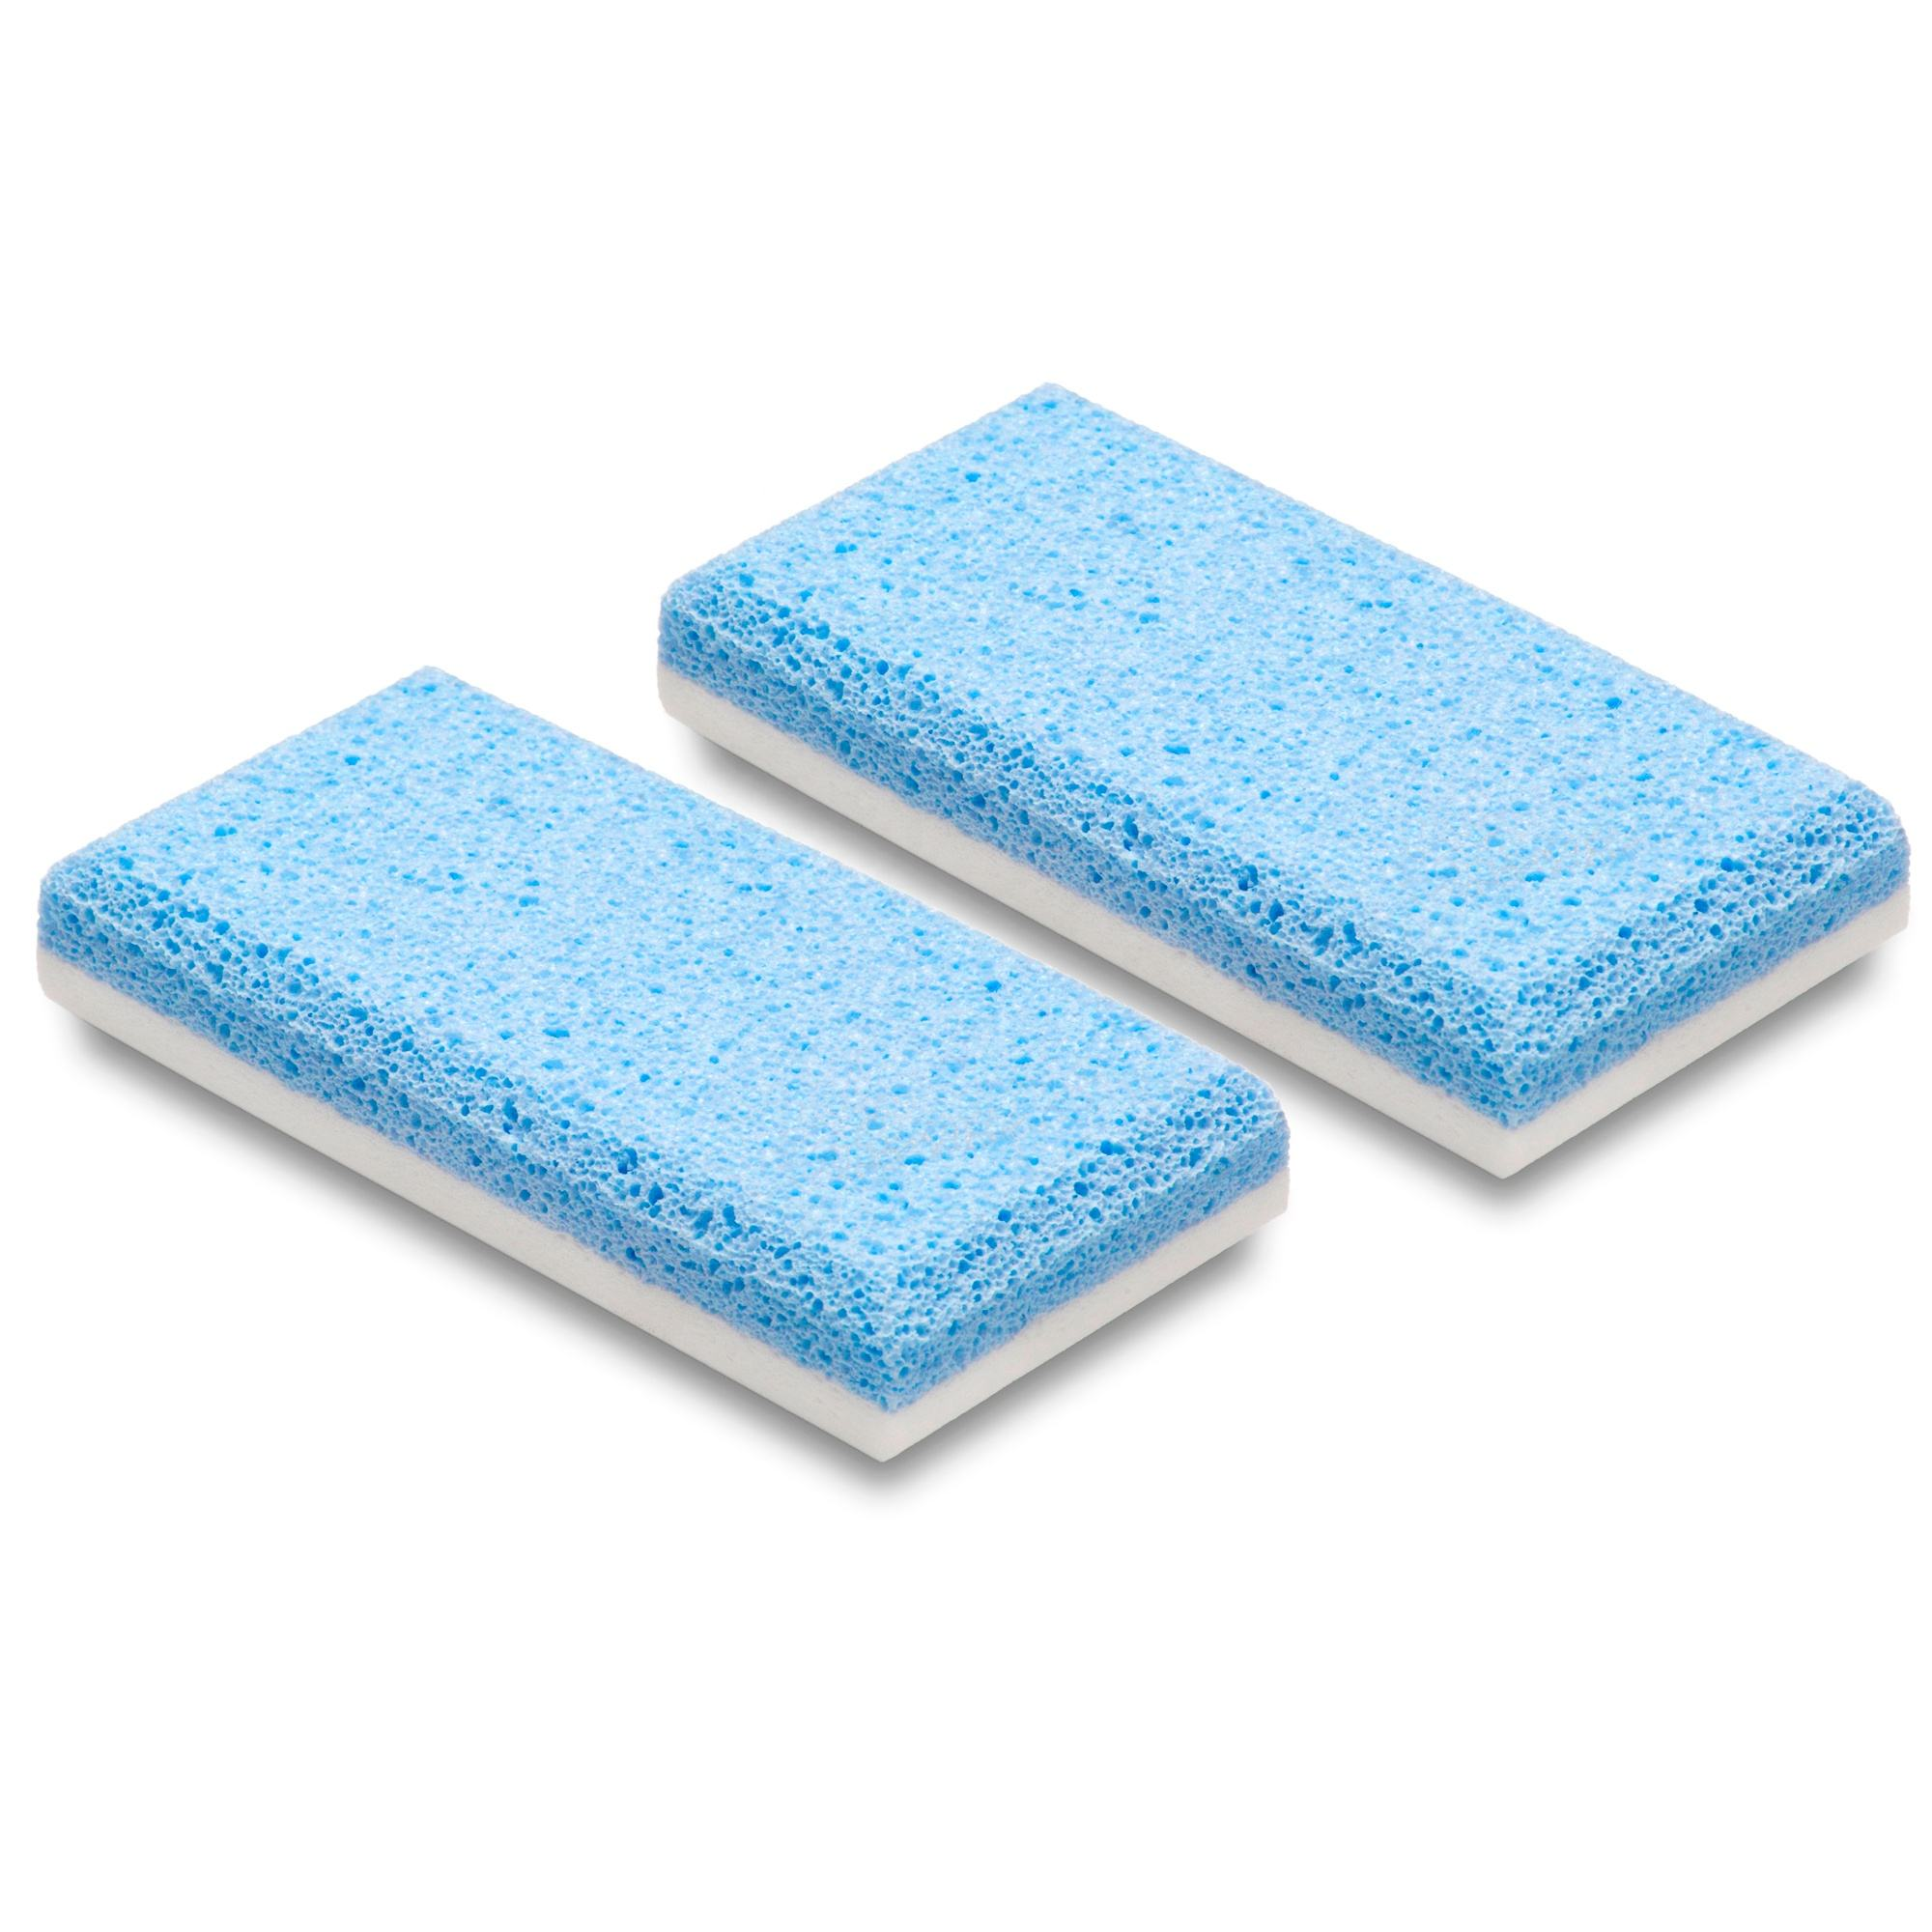 Pumice stone dual action - Premium Quality - Only manufacturer in the world that makes this pumice stone in one piece.